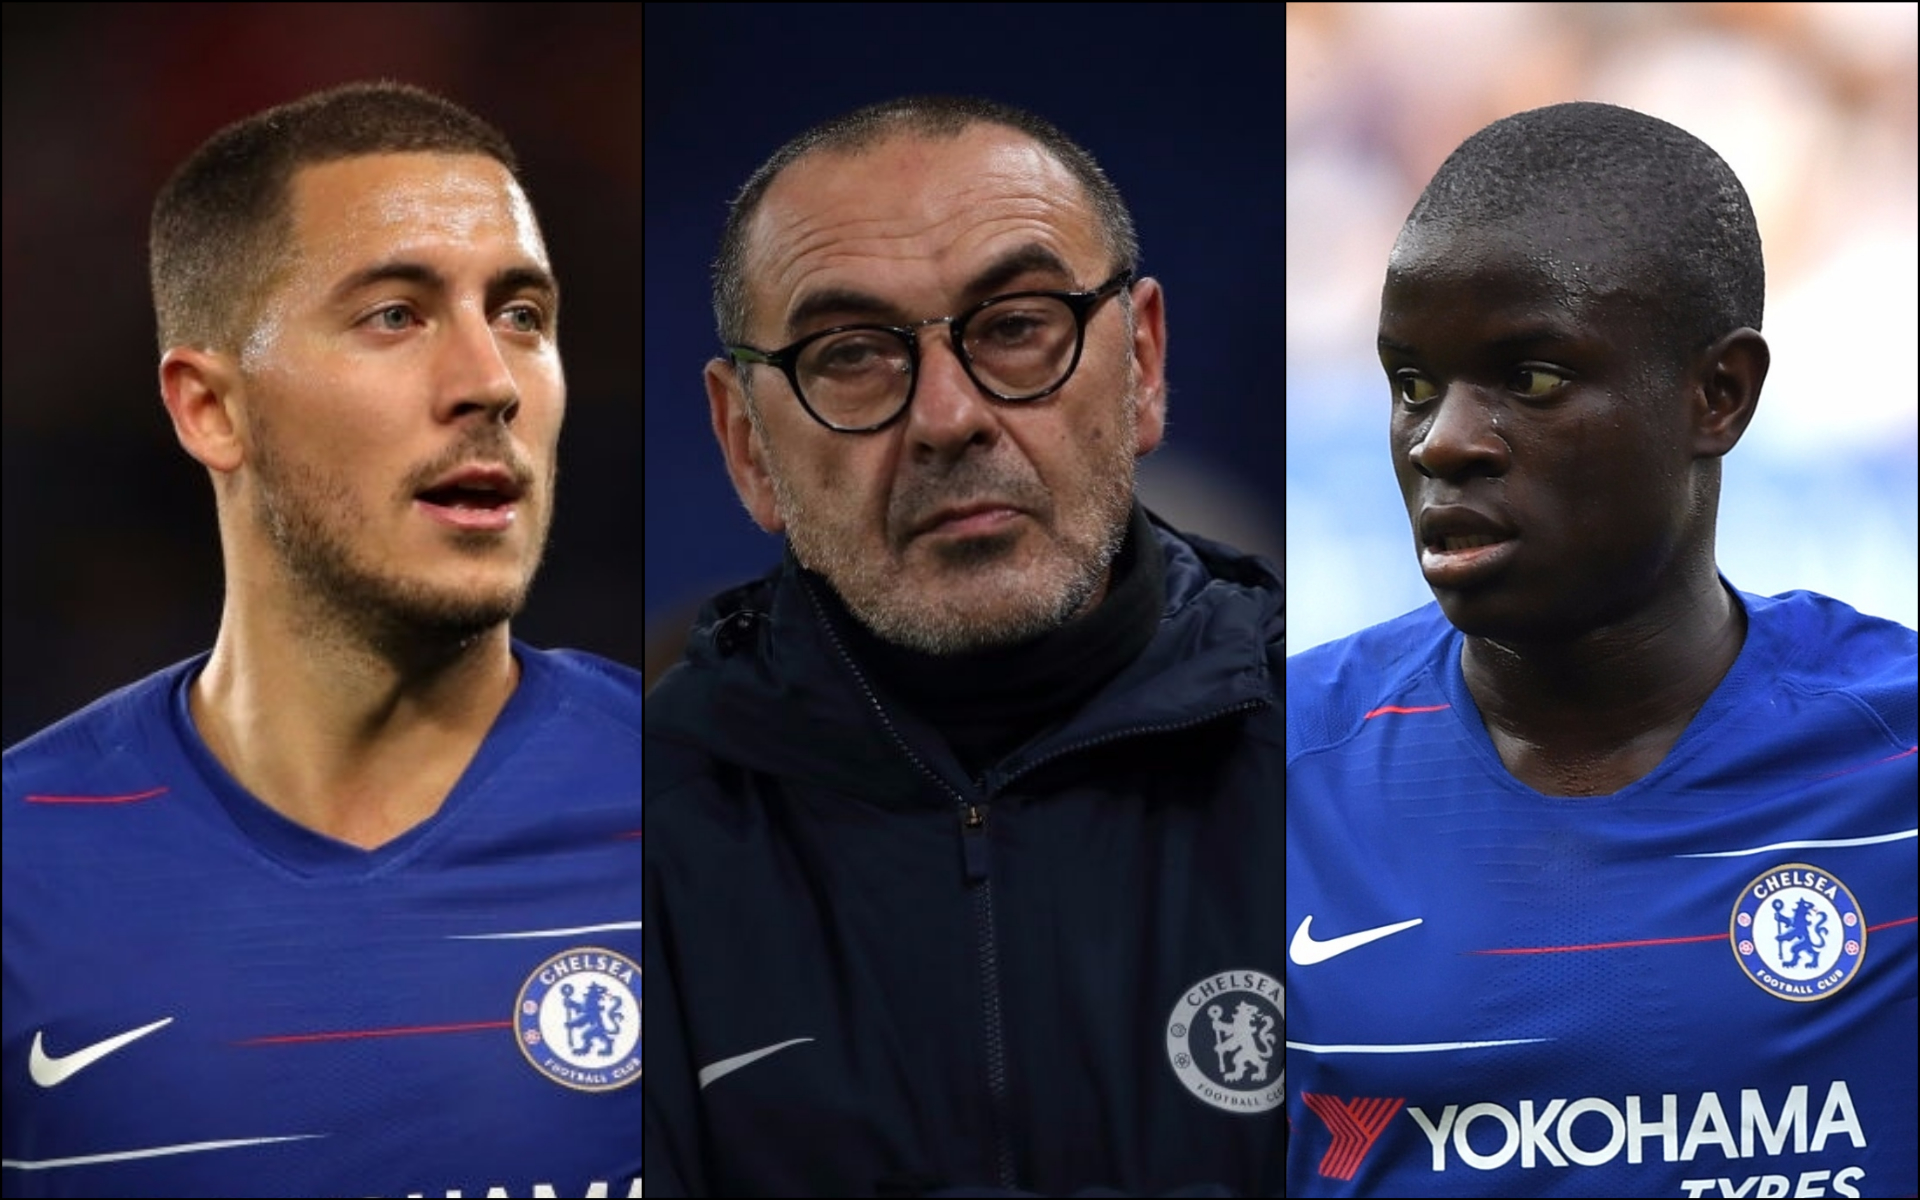 Maurizio Sarri has two 'big problems' at Chelsea involving N'Golo Kante and Eden Hazard